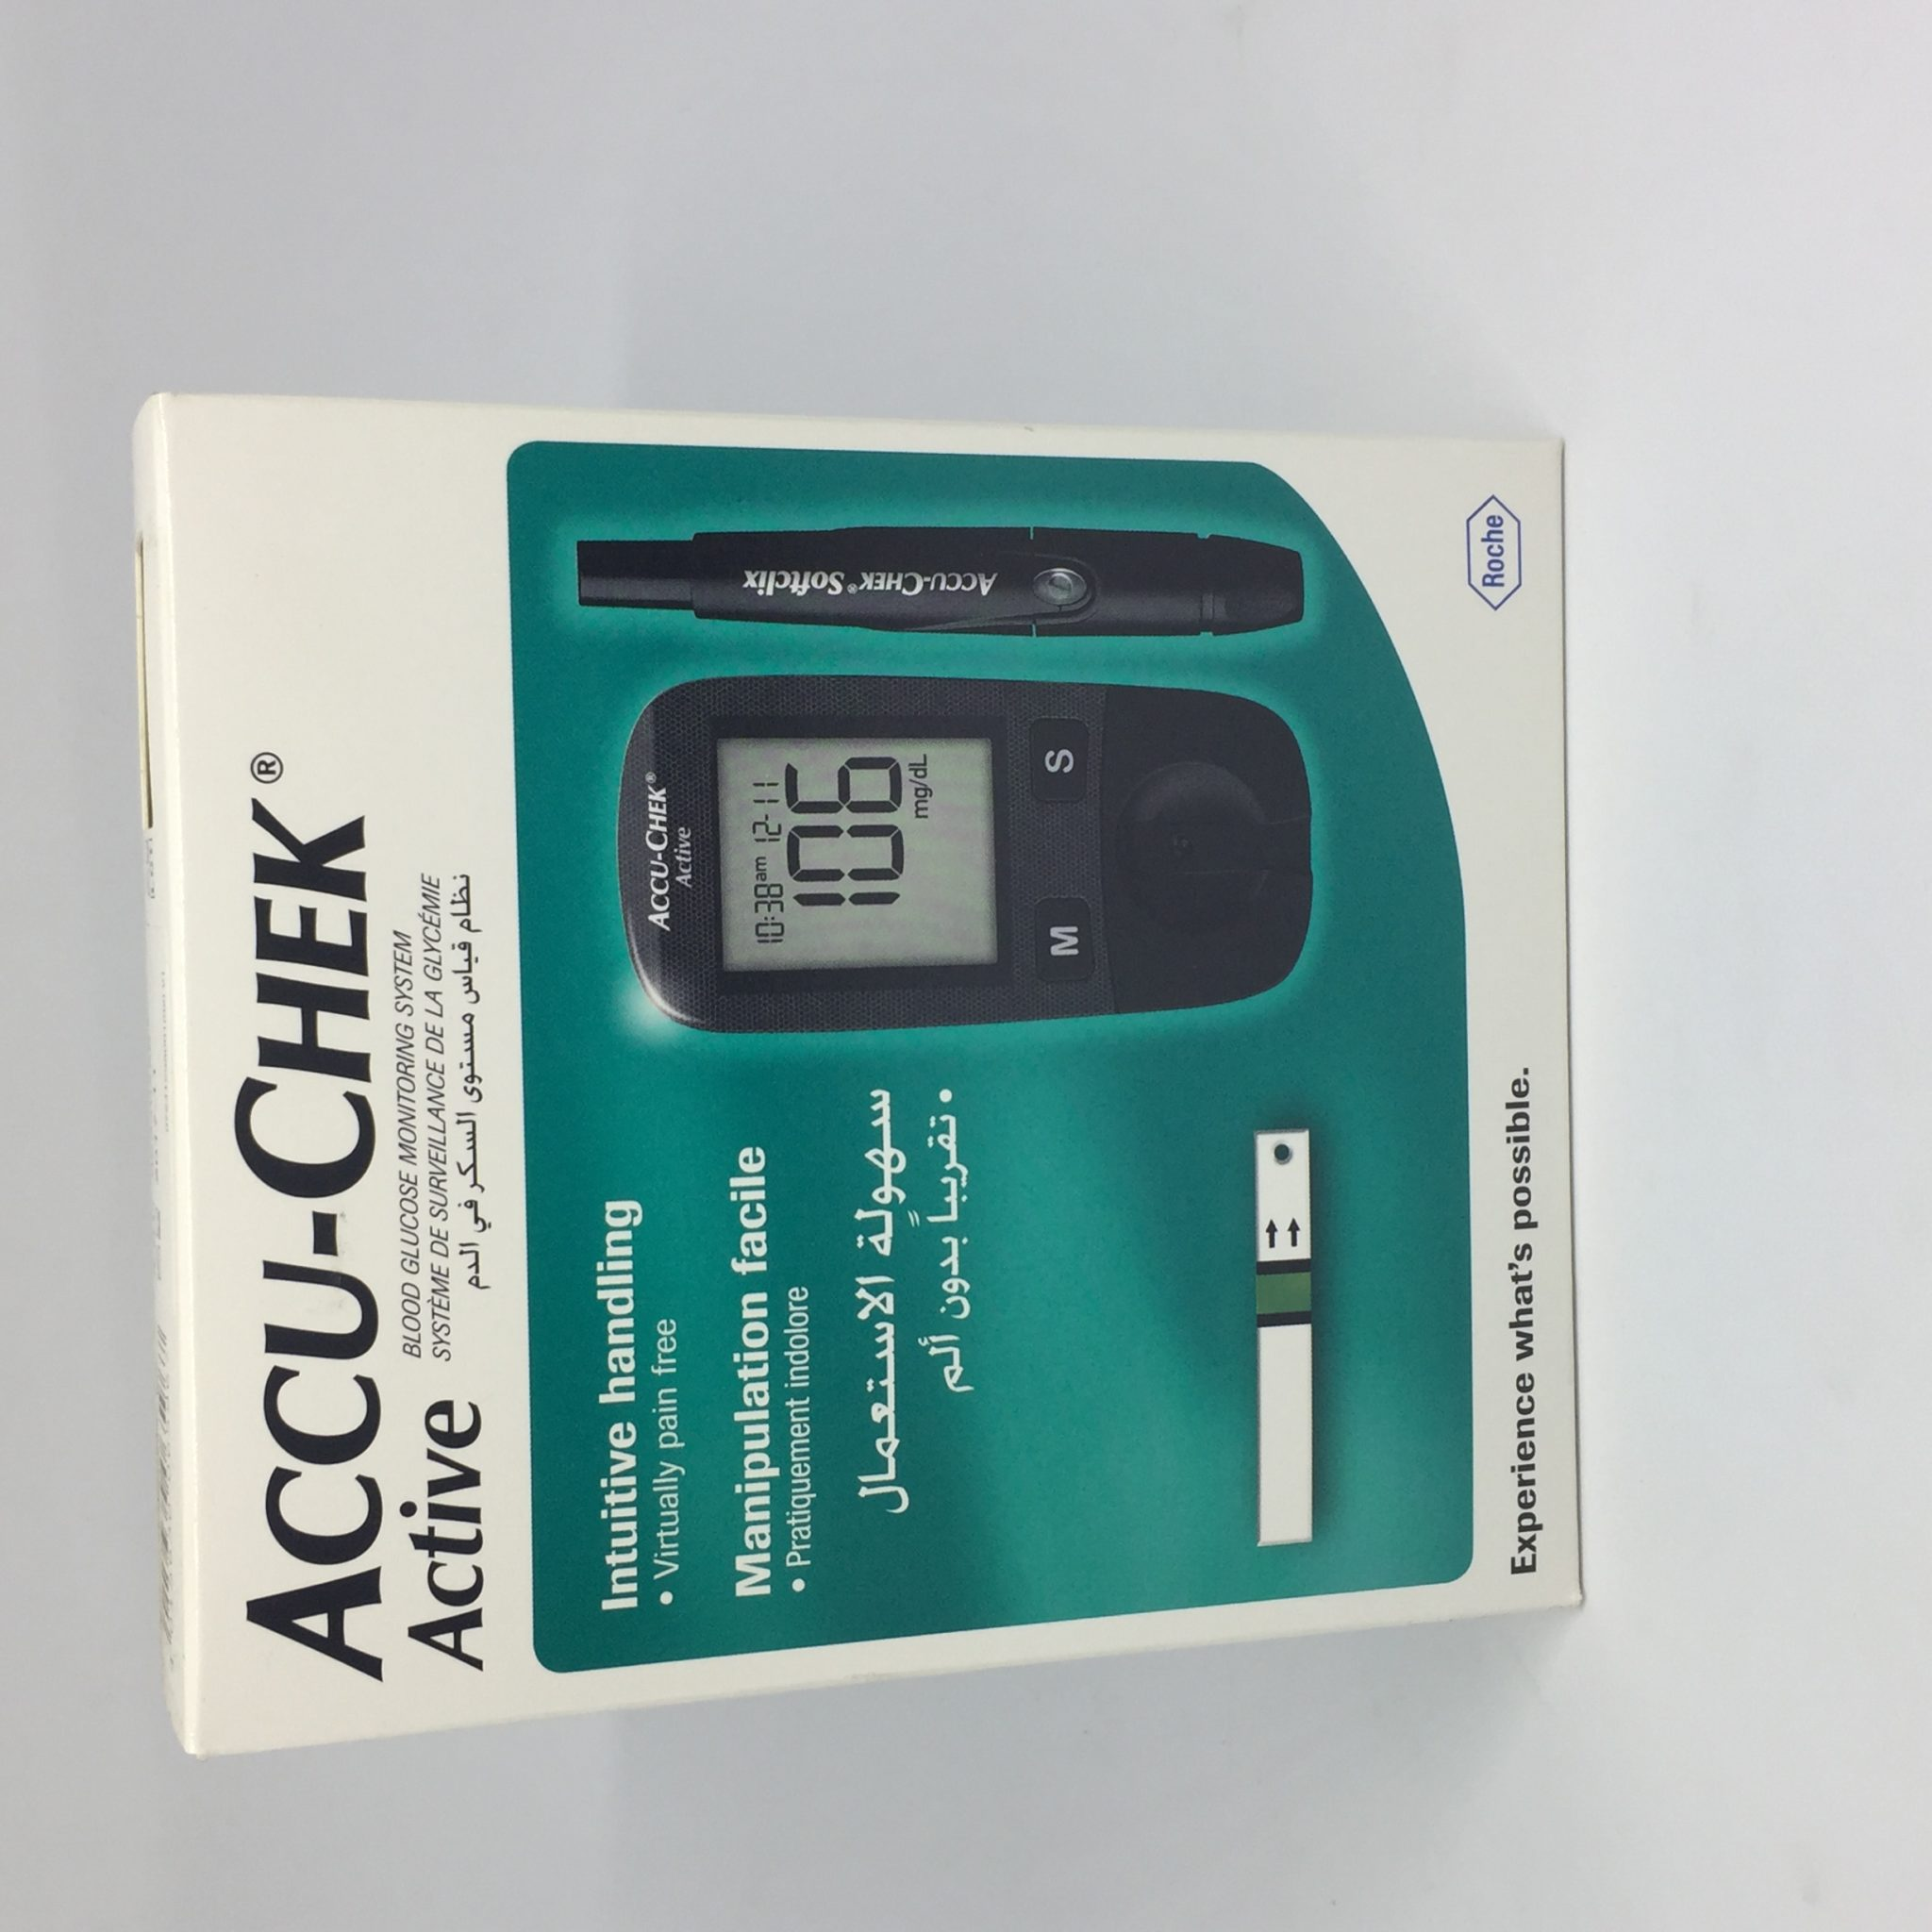 Blood Glucose Monitoring System in Nigeria